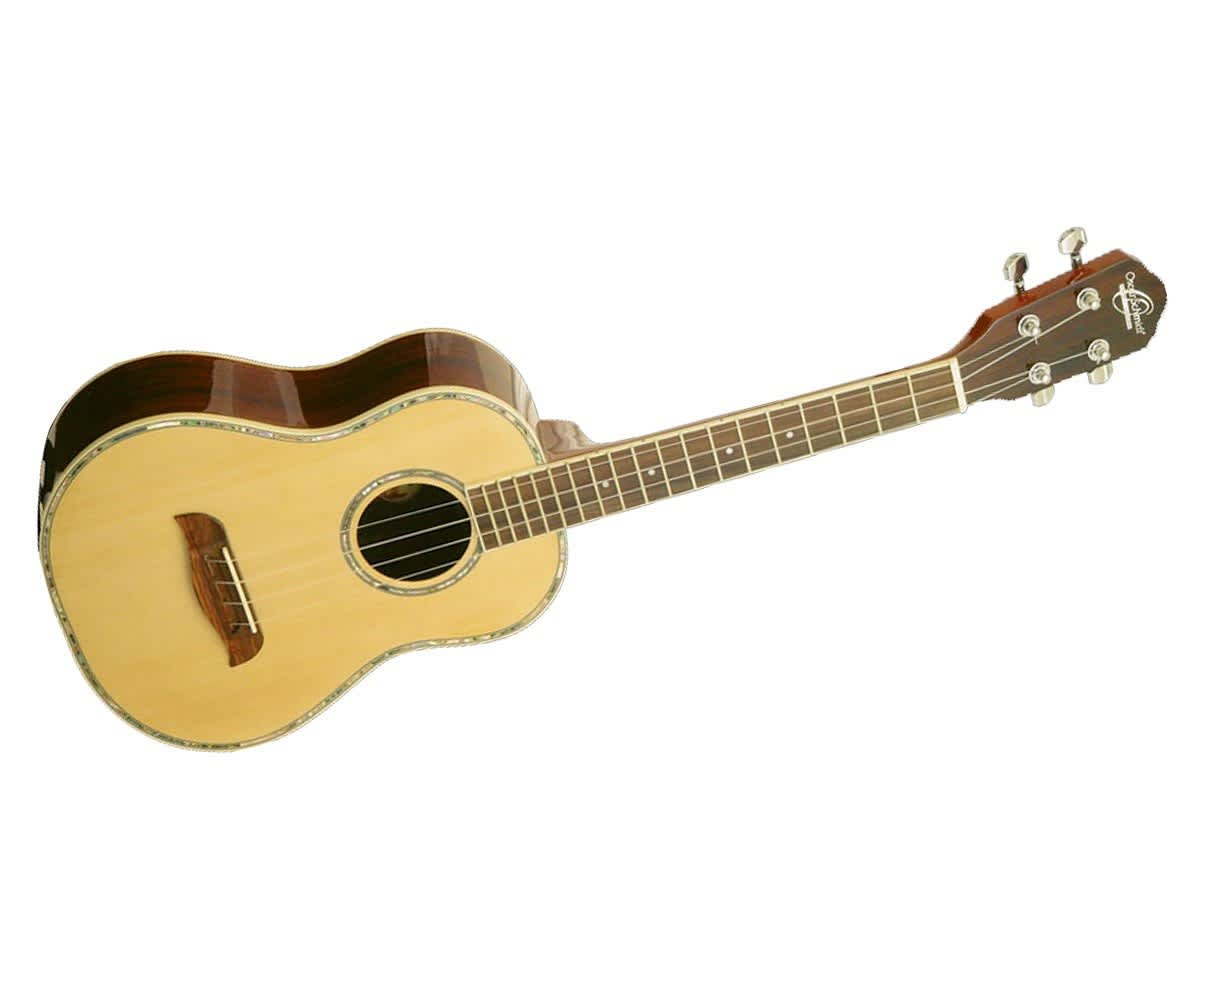 172233494759 likewise Whats The Difference Between A Lanikai And A Kala Ukulele And A Basic Ukulele Chord Chart as well 382416 Oscar Schmidt Ou4 Tenor Spruce Top Ukulele besides Oscar Schmidt Ou100k 5 String Koa Cutaway Tenor Ukulele Case With Pickup Eq Tuner besides 626977 Oscar Schmidt 8 Ou78t Glossy Finish Spalted Mango Tenor 8 String Ukulele Fine Ukes Special Edition. on oscar schmidt tenor ukulele